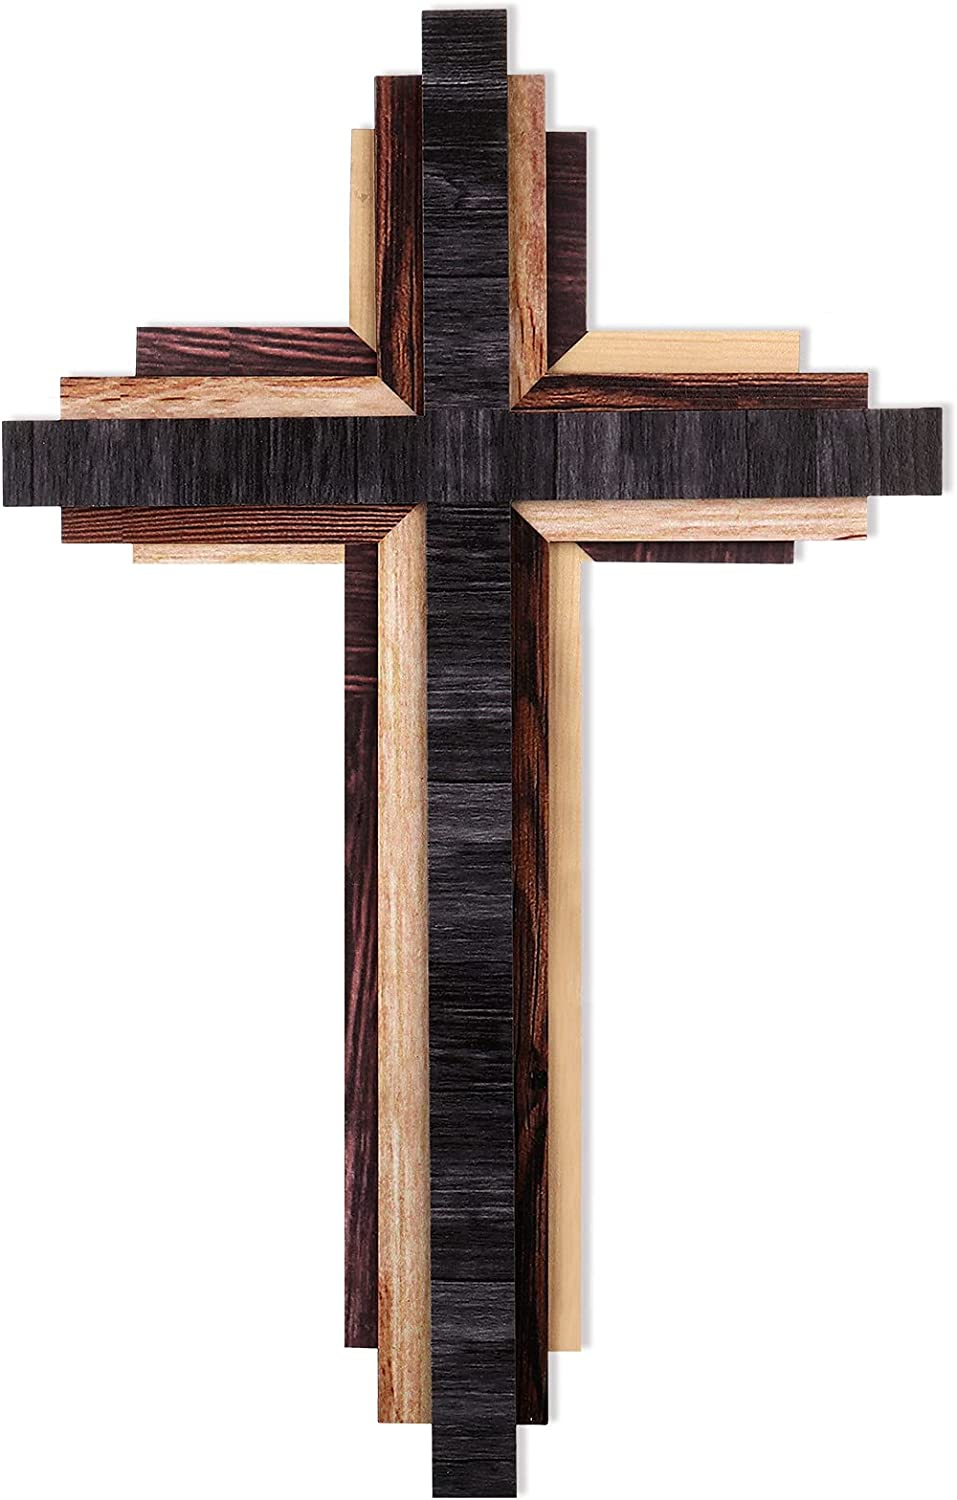 Wooden Wall Cross 3D Multi-Color Wooden Wall Cross Triple Stacked Reclaimed Wood Wall Cross Decorative Worn Wooden Hanging Wall Cross for Wall Home Religious Decoration (Classic Color)